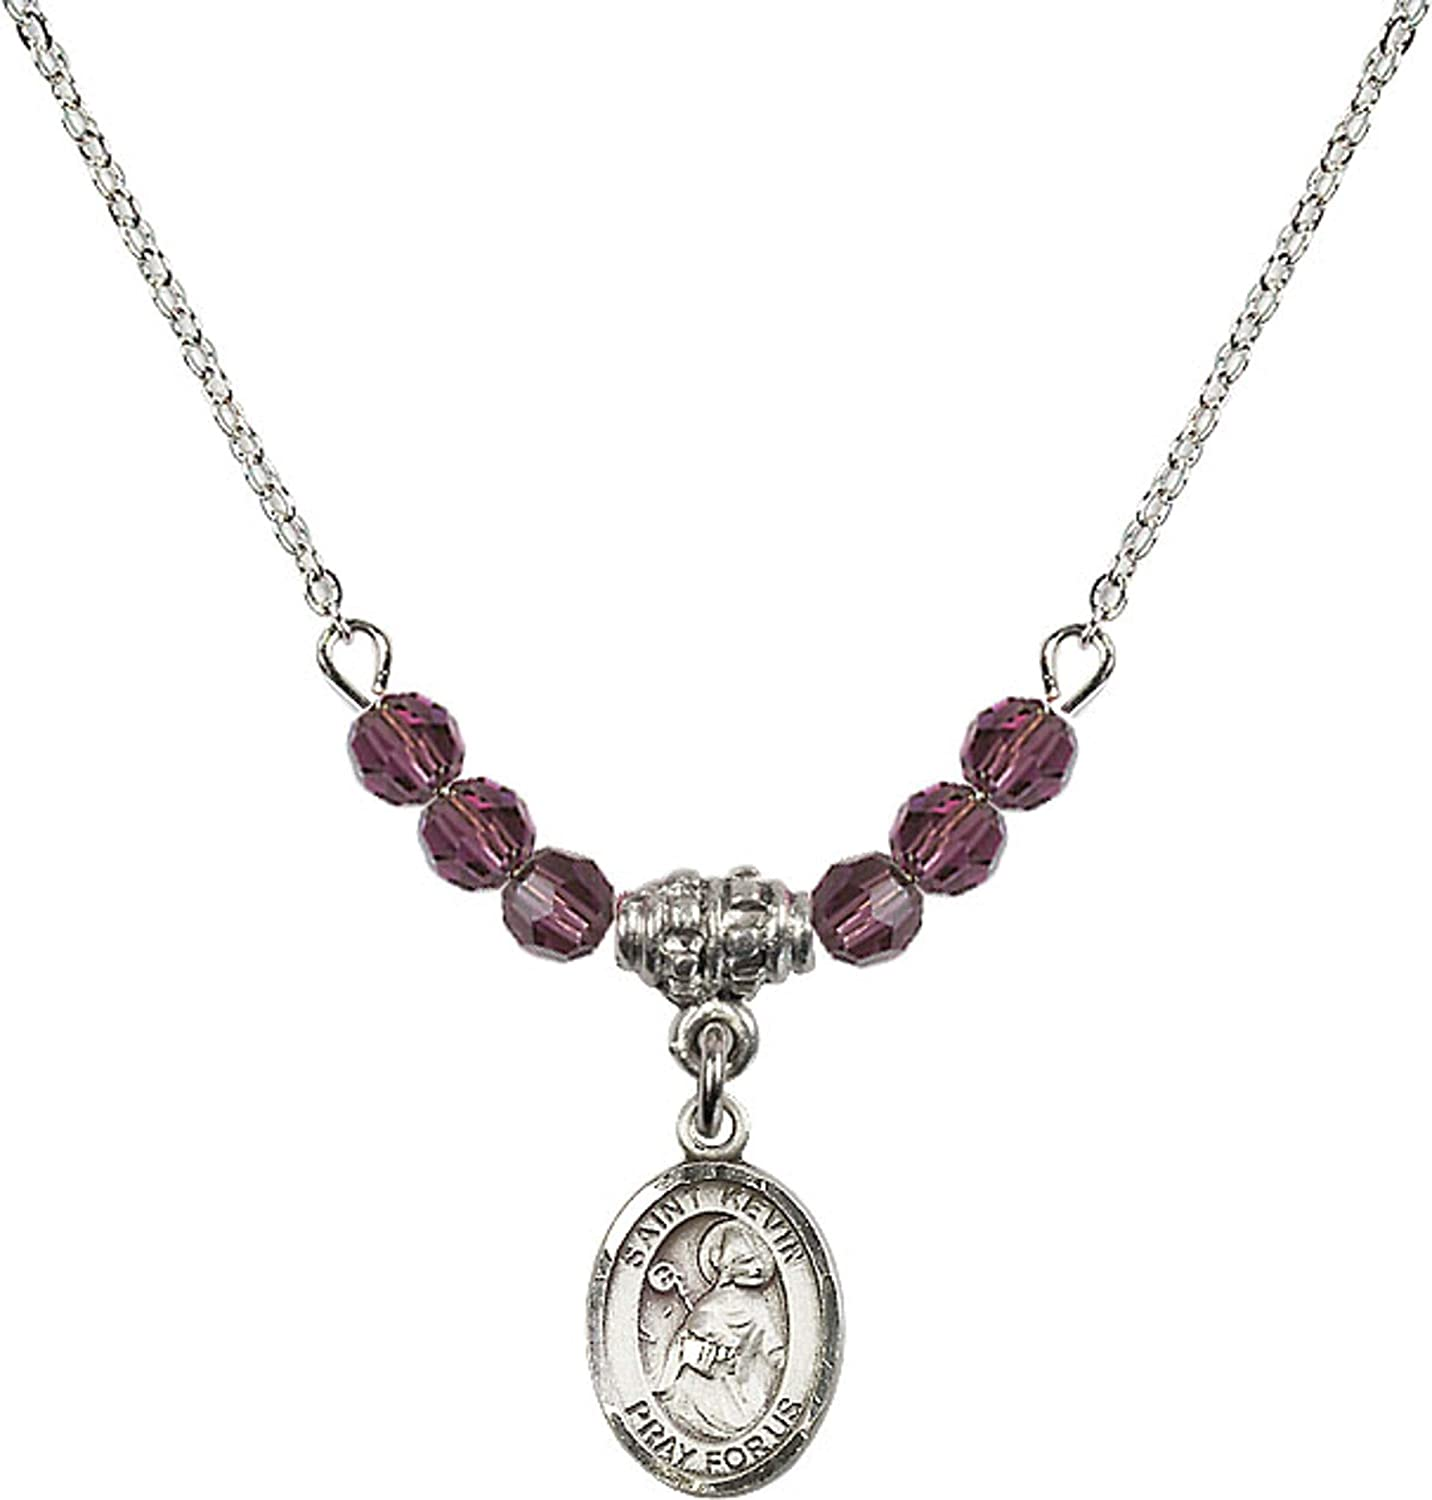 Bonyak Jewelry 18 Inch Rhodium Plated Necklace w// 4mm Purple February Birth Month Stone Beads and Saint Kevin Charm